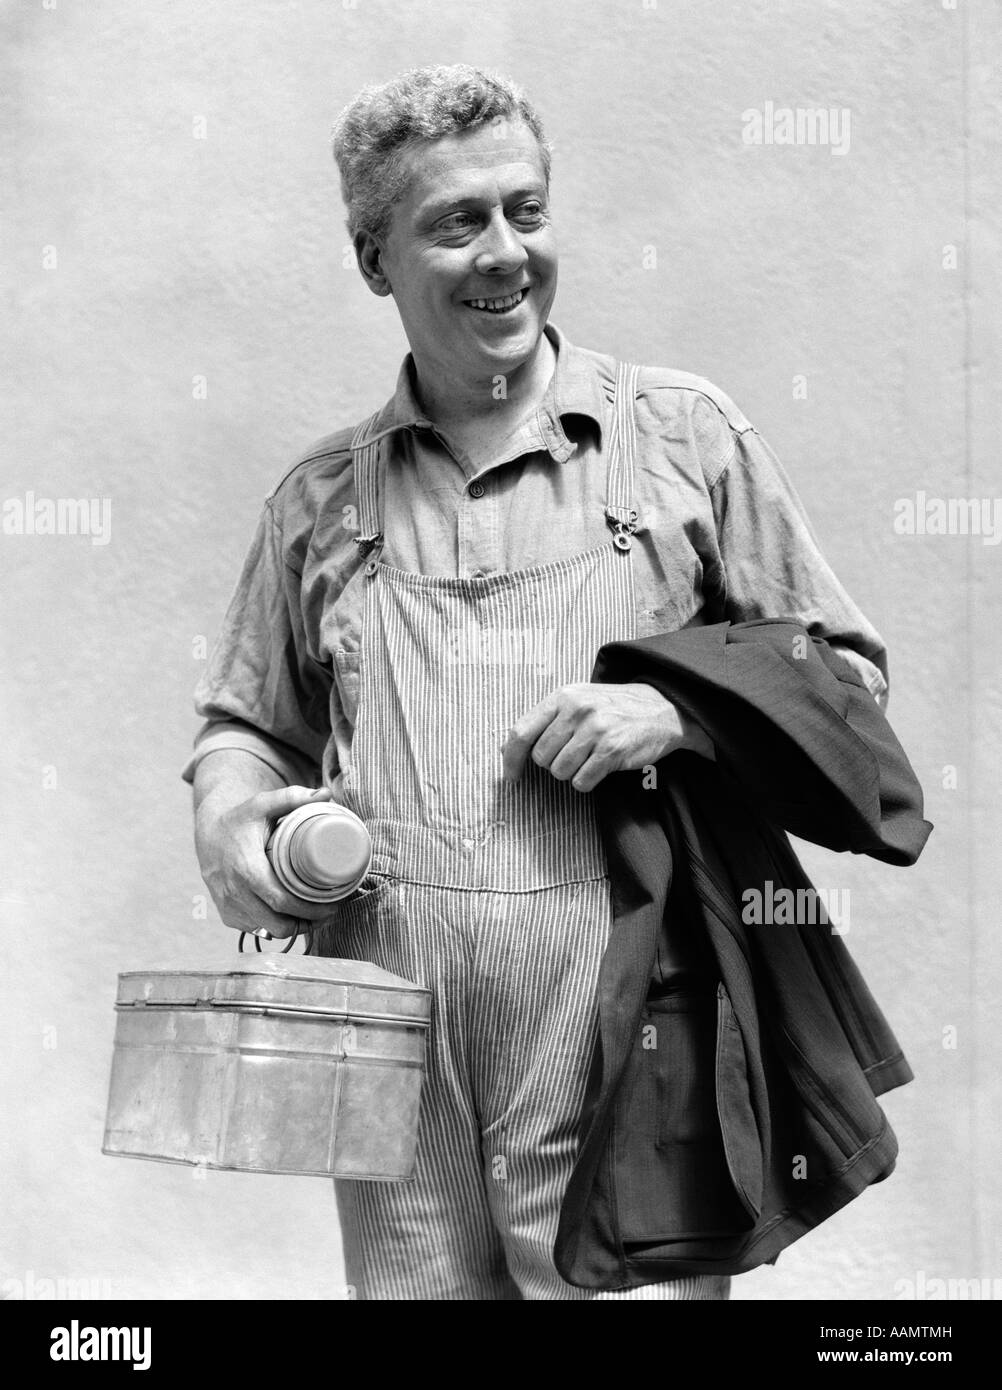 1930s MAN IN OVERALLS WORK UNIFORM HOLDING THERMOS LUNCHBOX AND JACKET - Stock Image